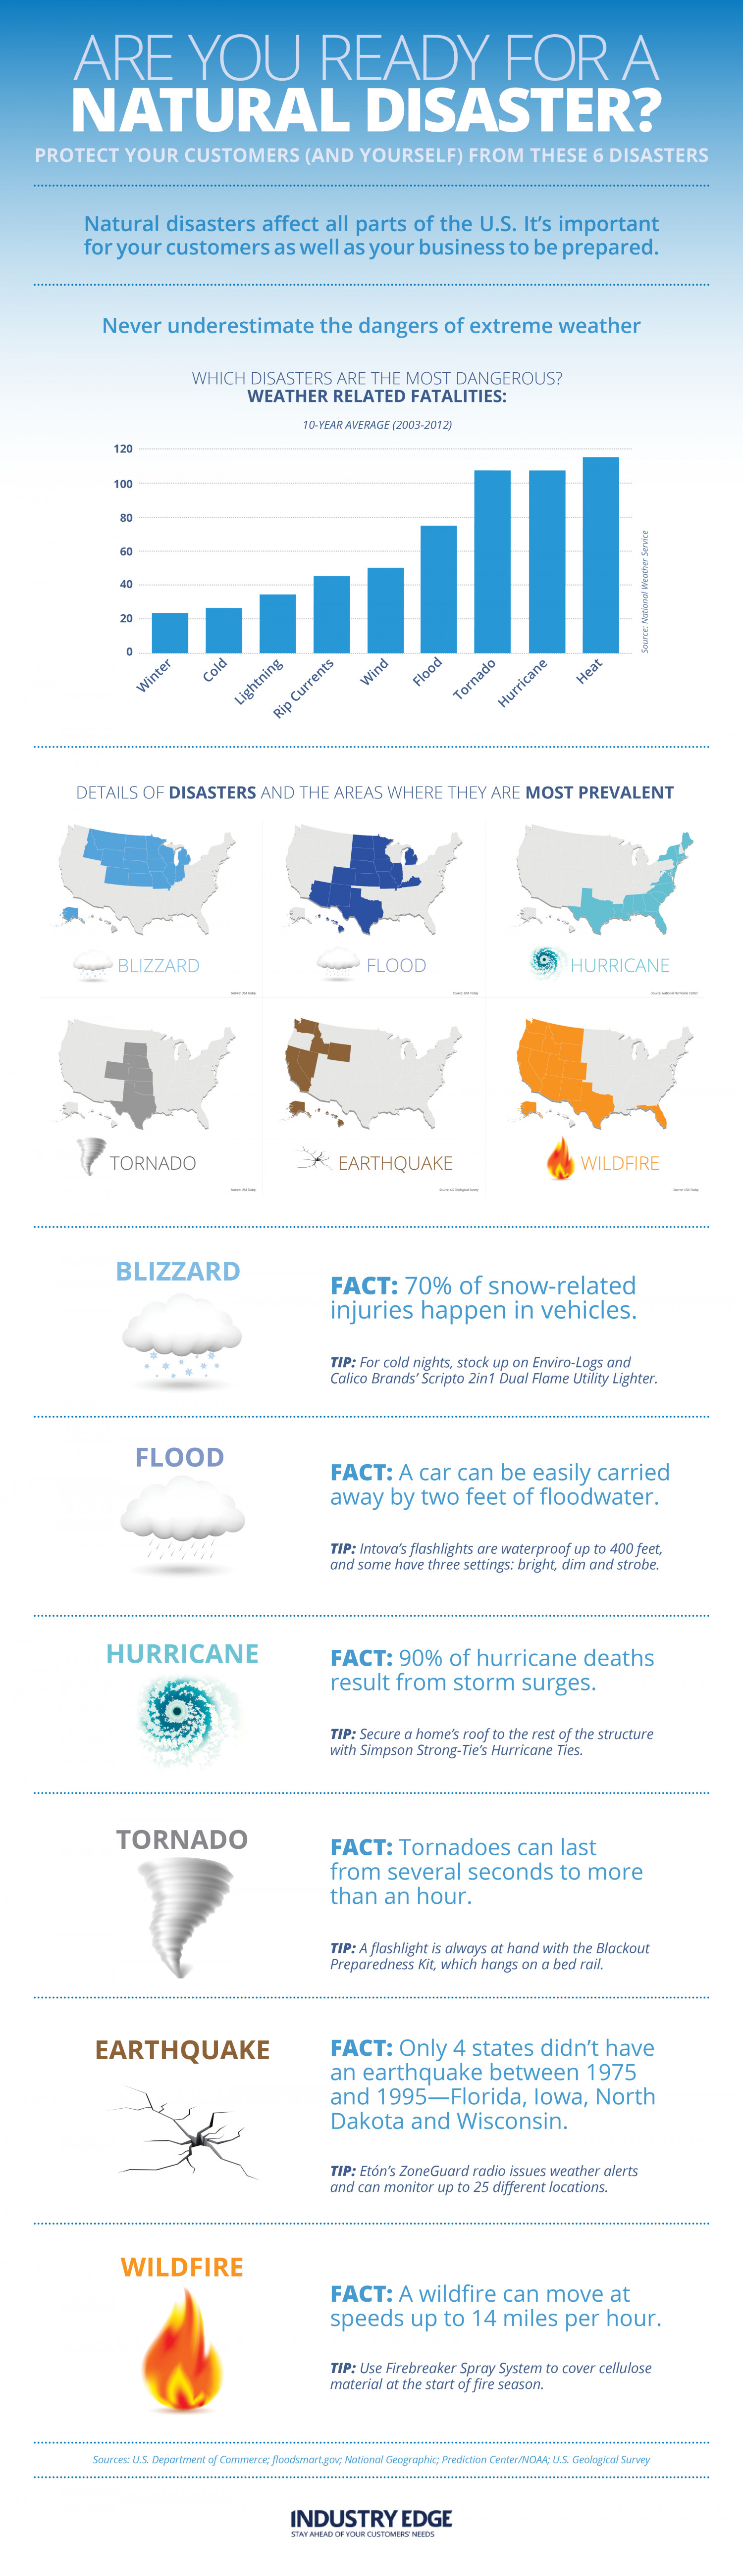 Are You Ready for a Natural Disaster? Infographic